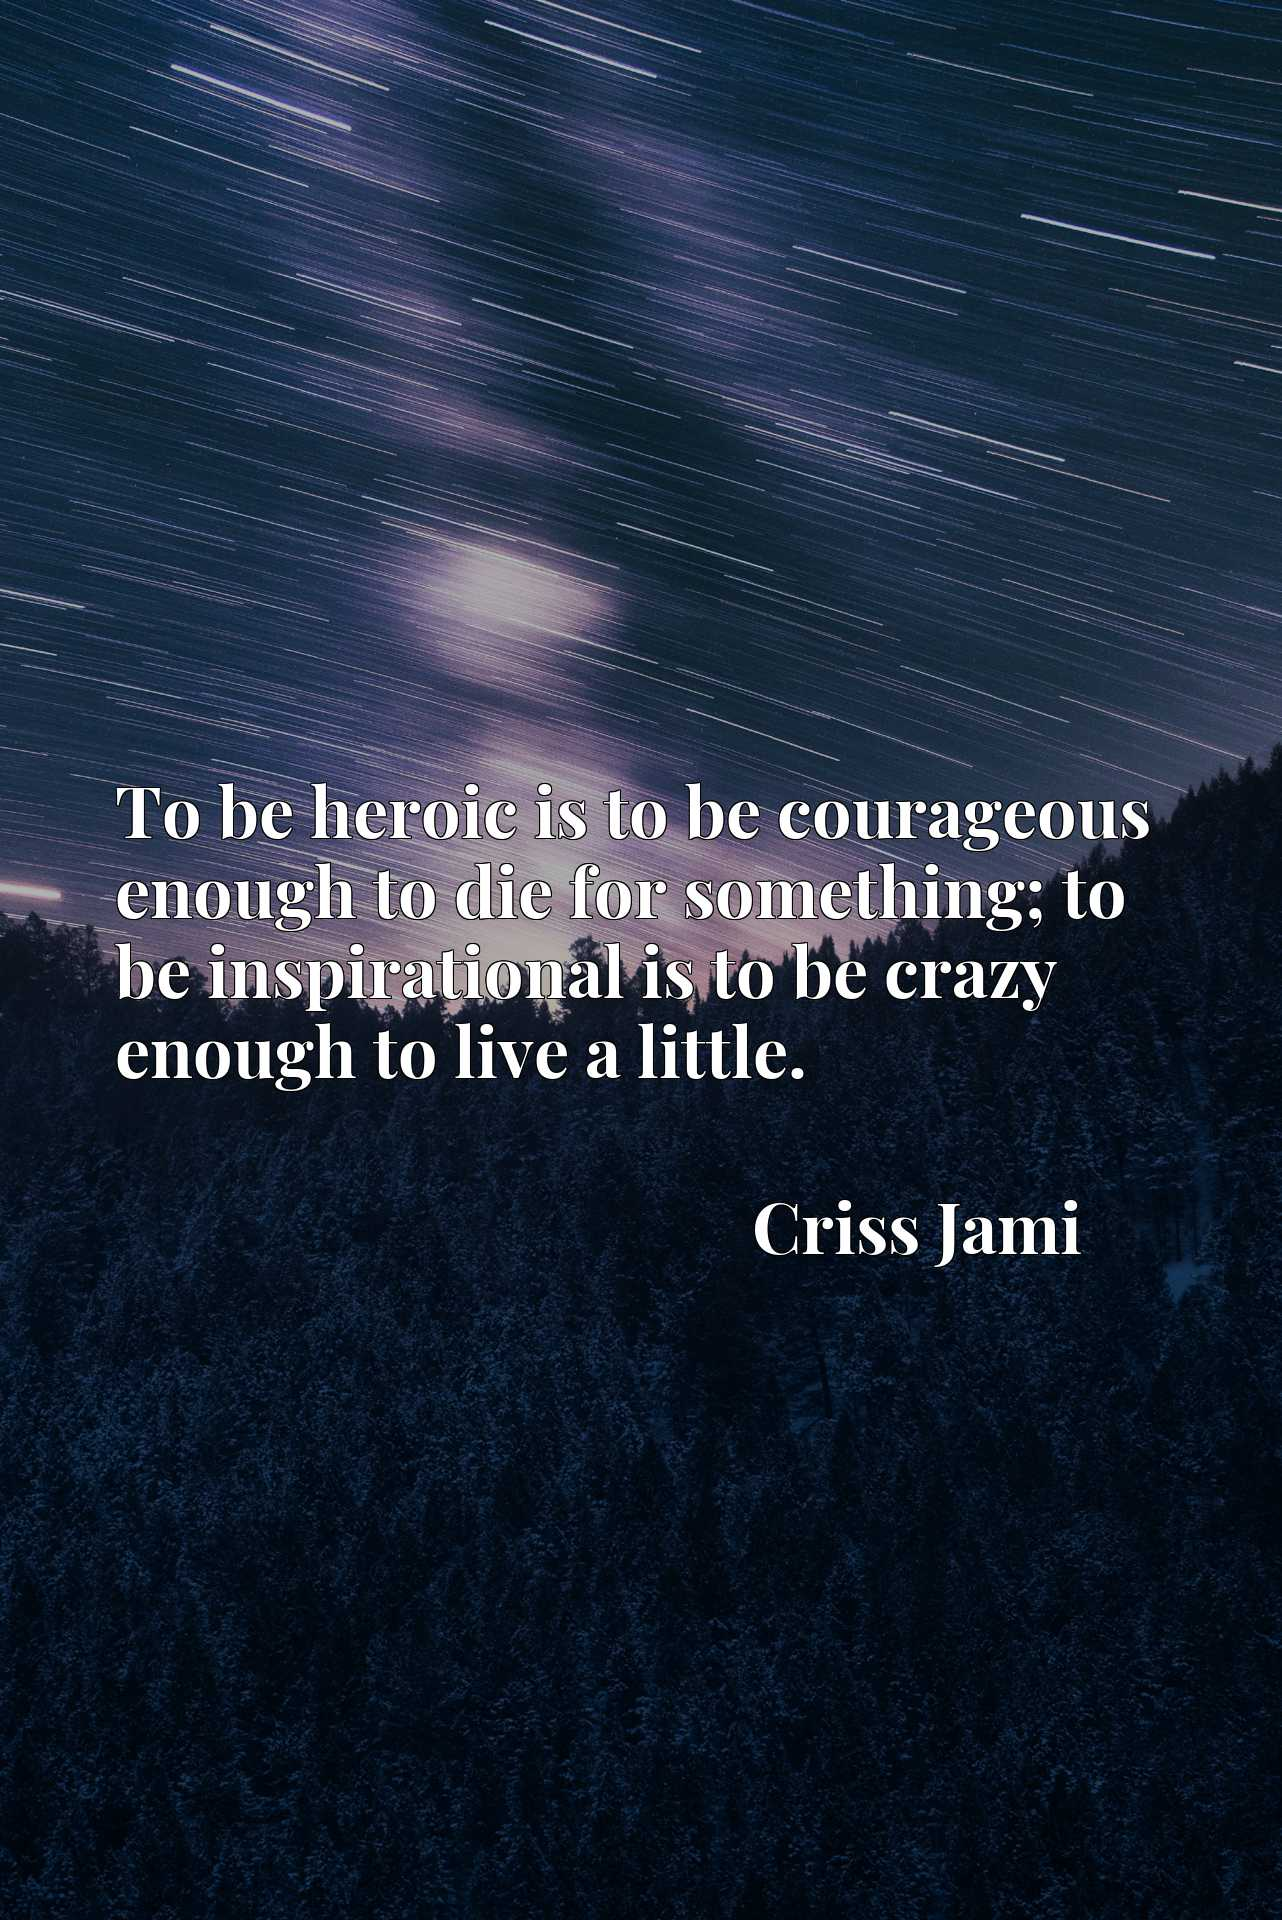 Quote Picture :To be heroic is to be courageous enough to die for something; to be inspirational is to be crazy enough to live a little.